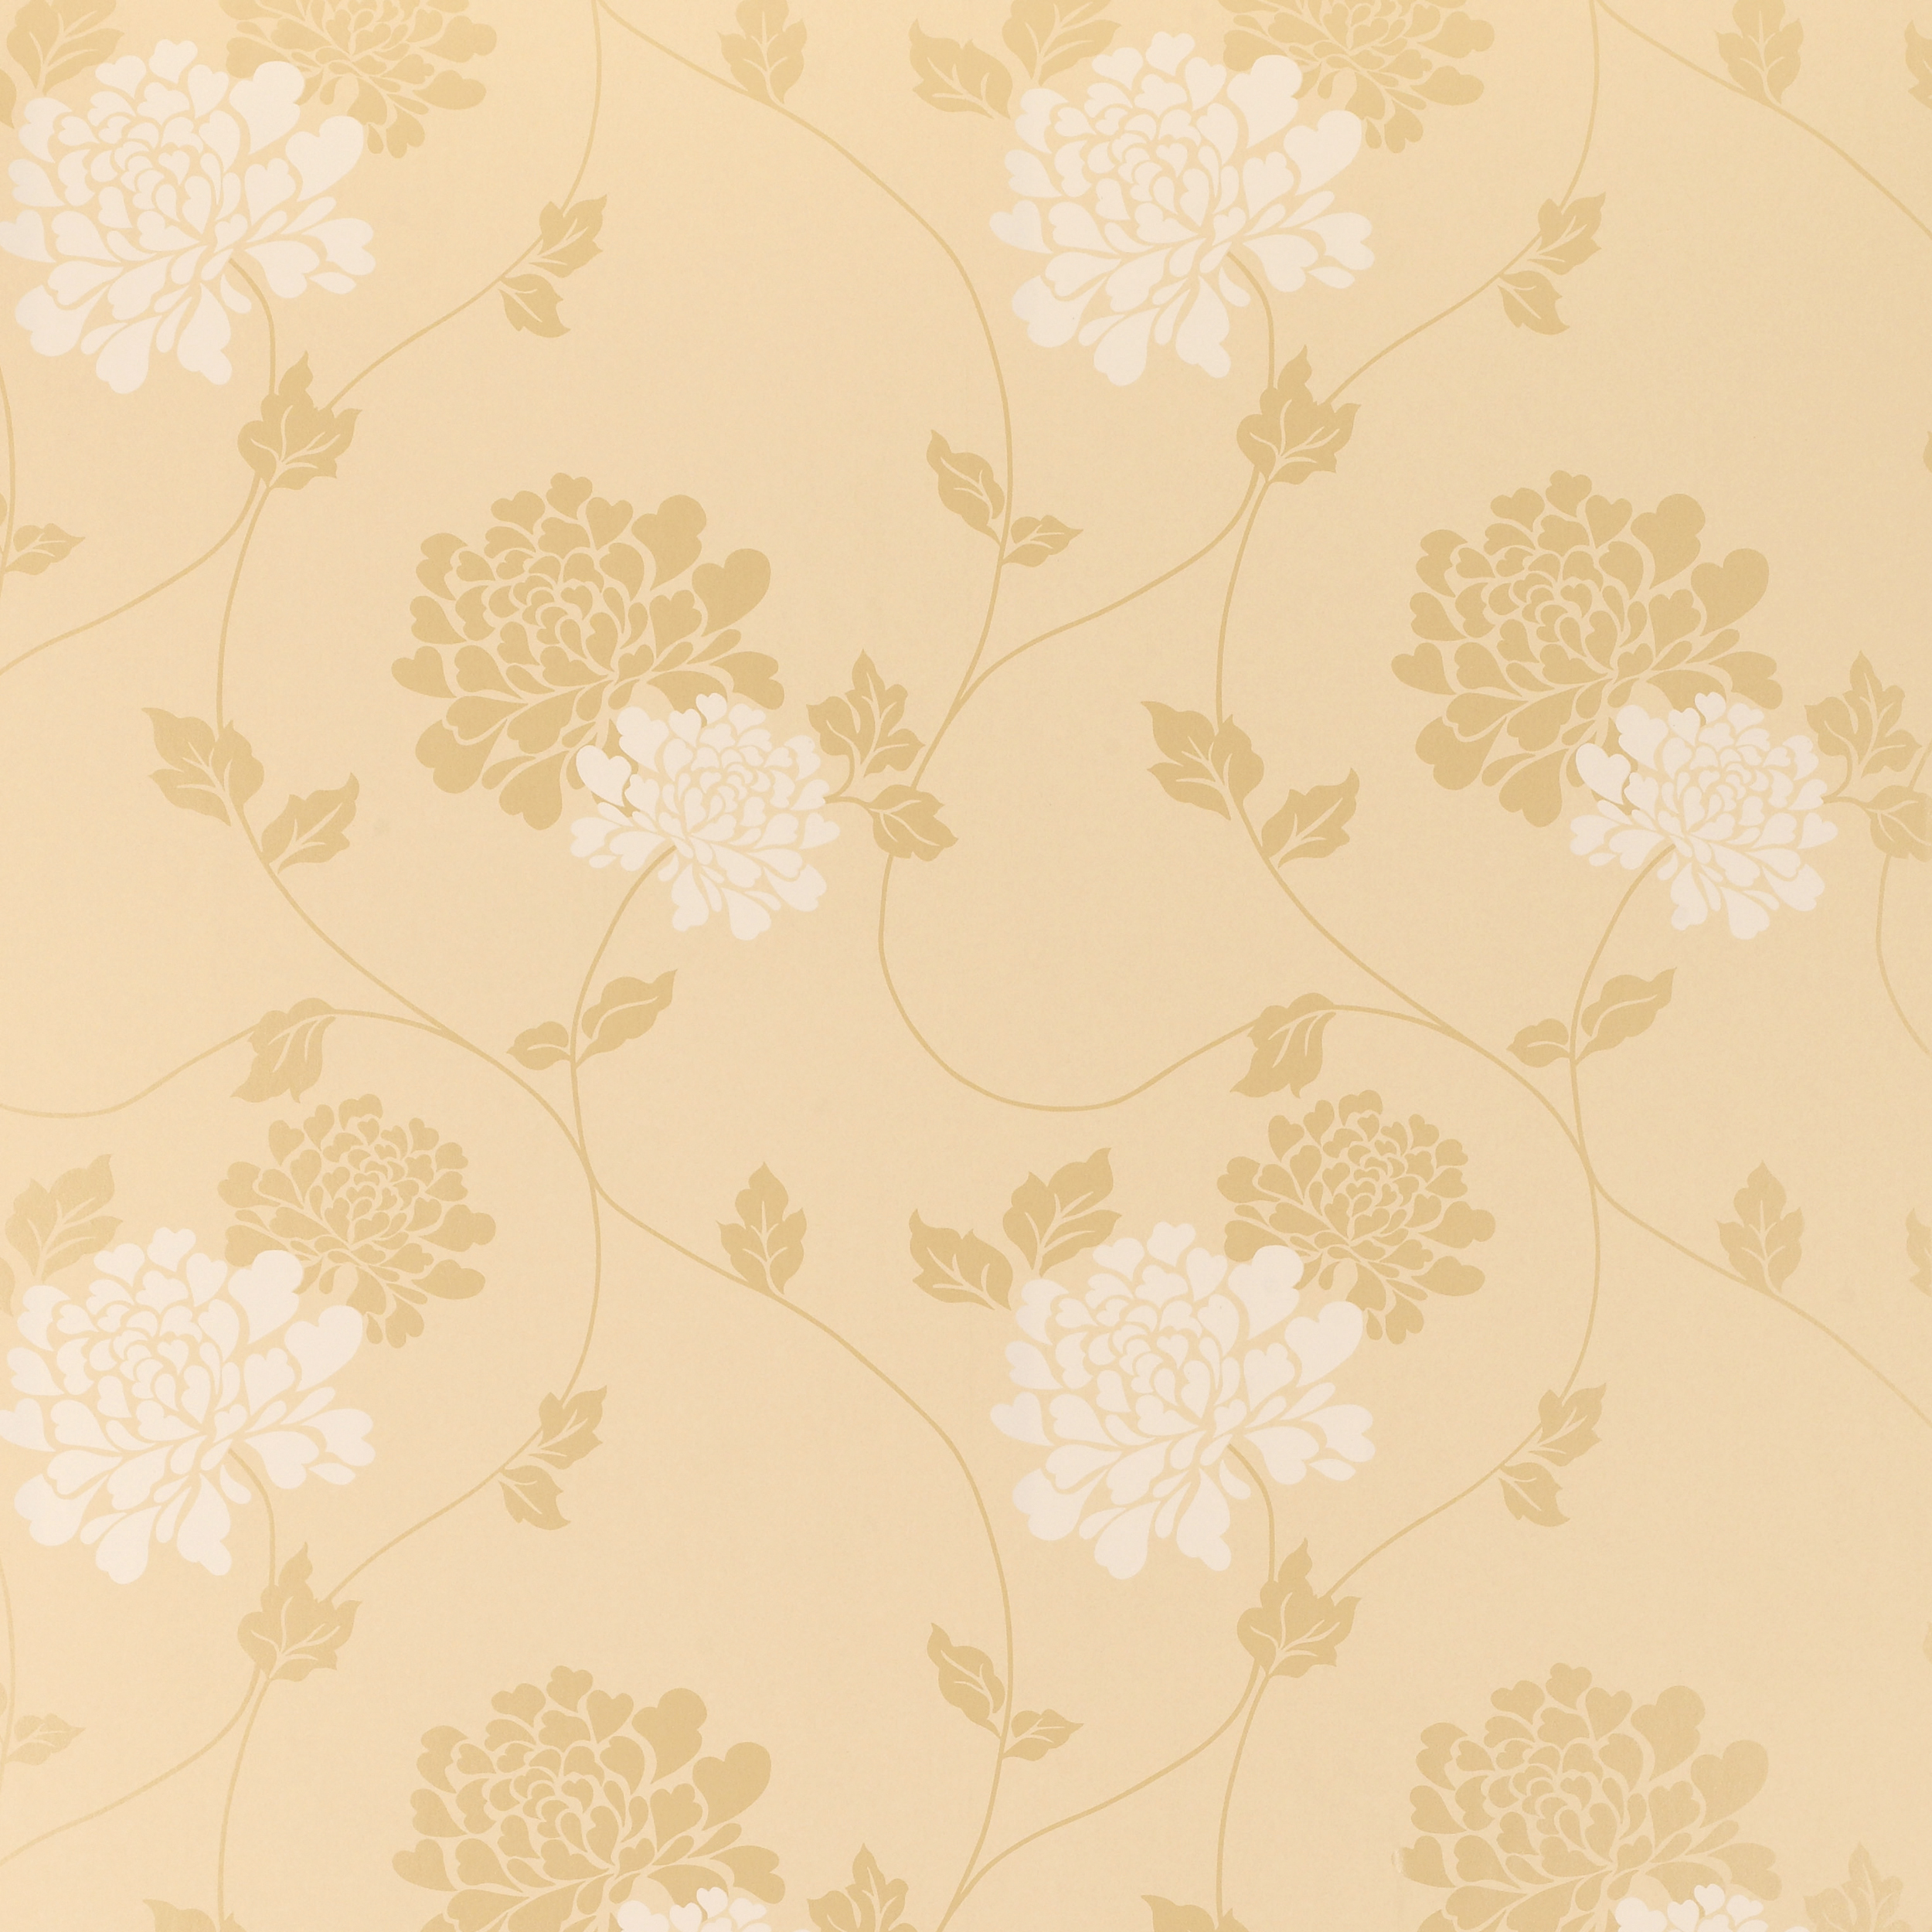 Home Decorating Wallpaper Isodore Gold Floral Wallpaper 2500x2500